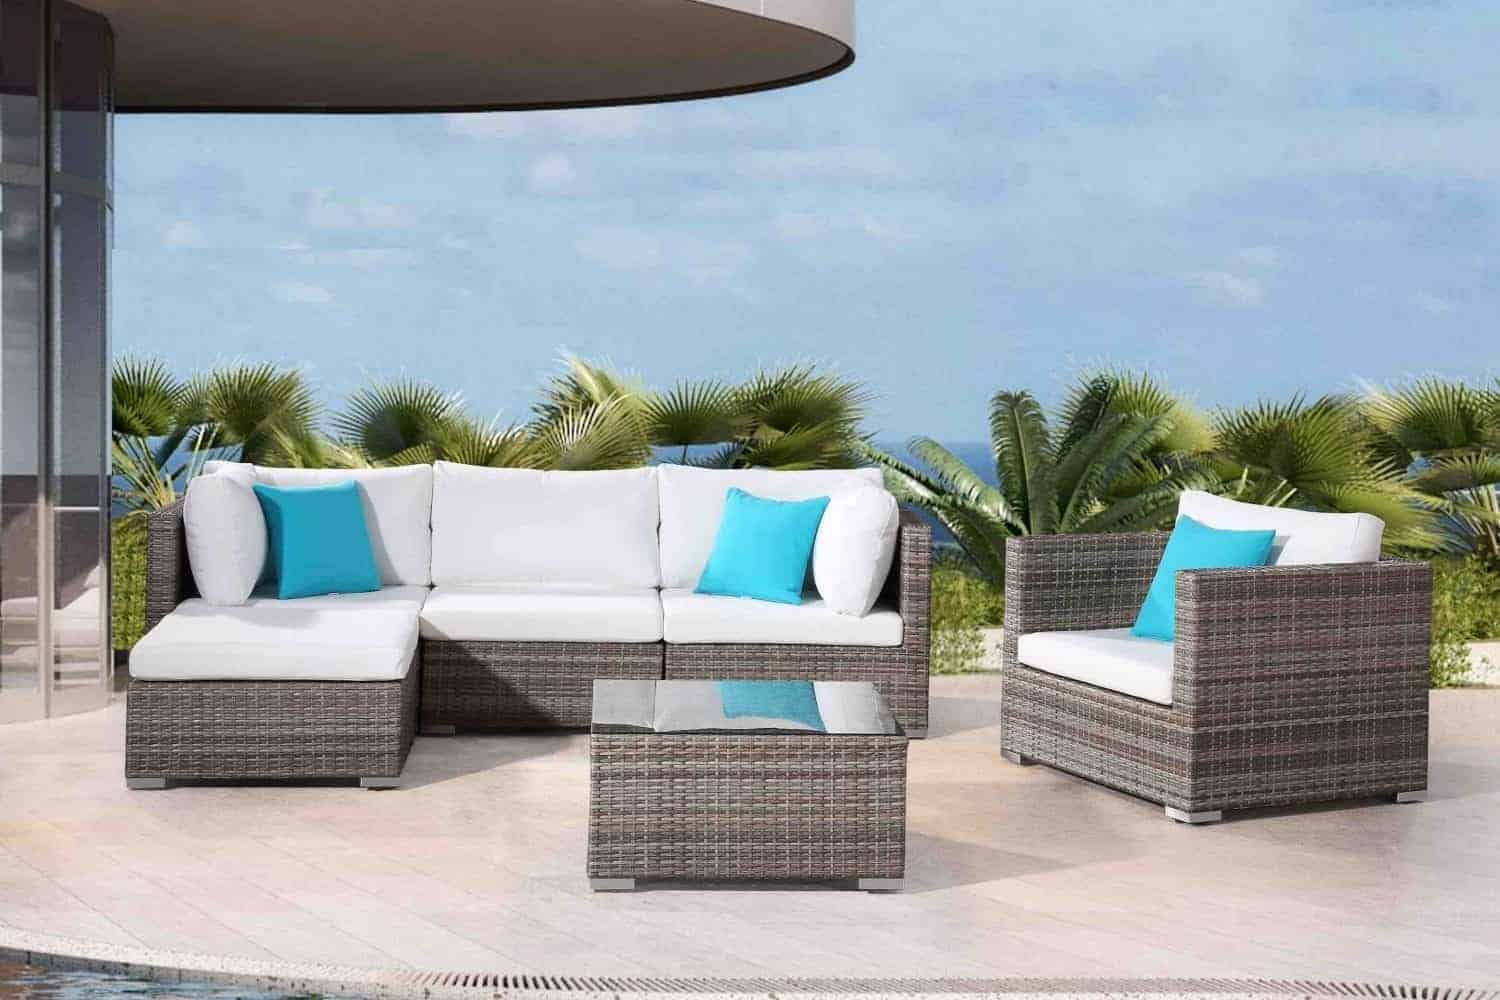 Velago Patio Furniture & Modern Wicker Sectional Lounge for the Patio | Velago Patio Furniture